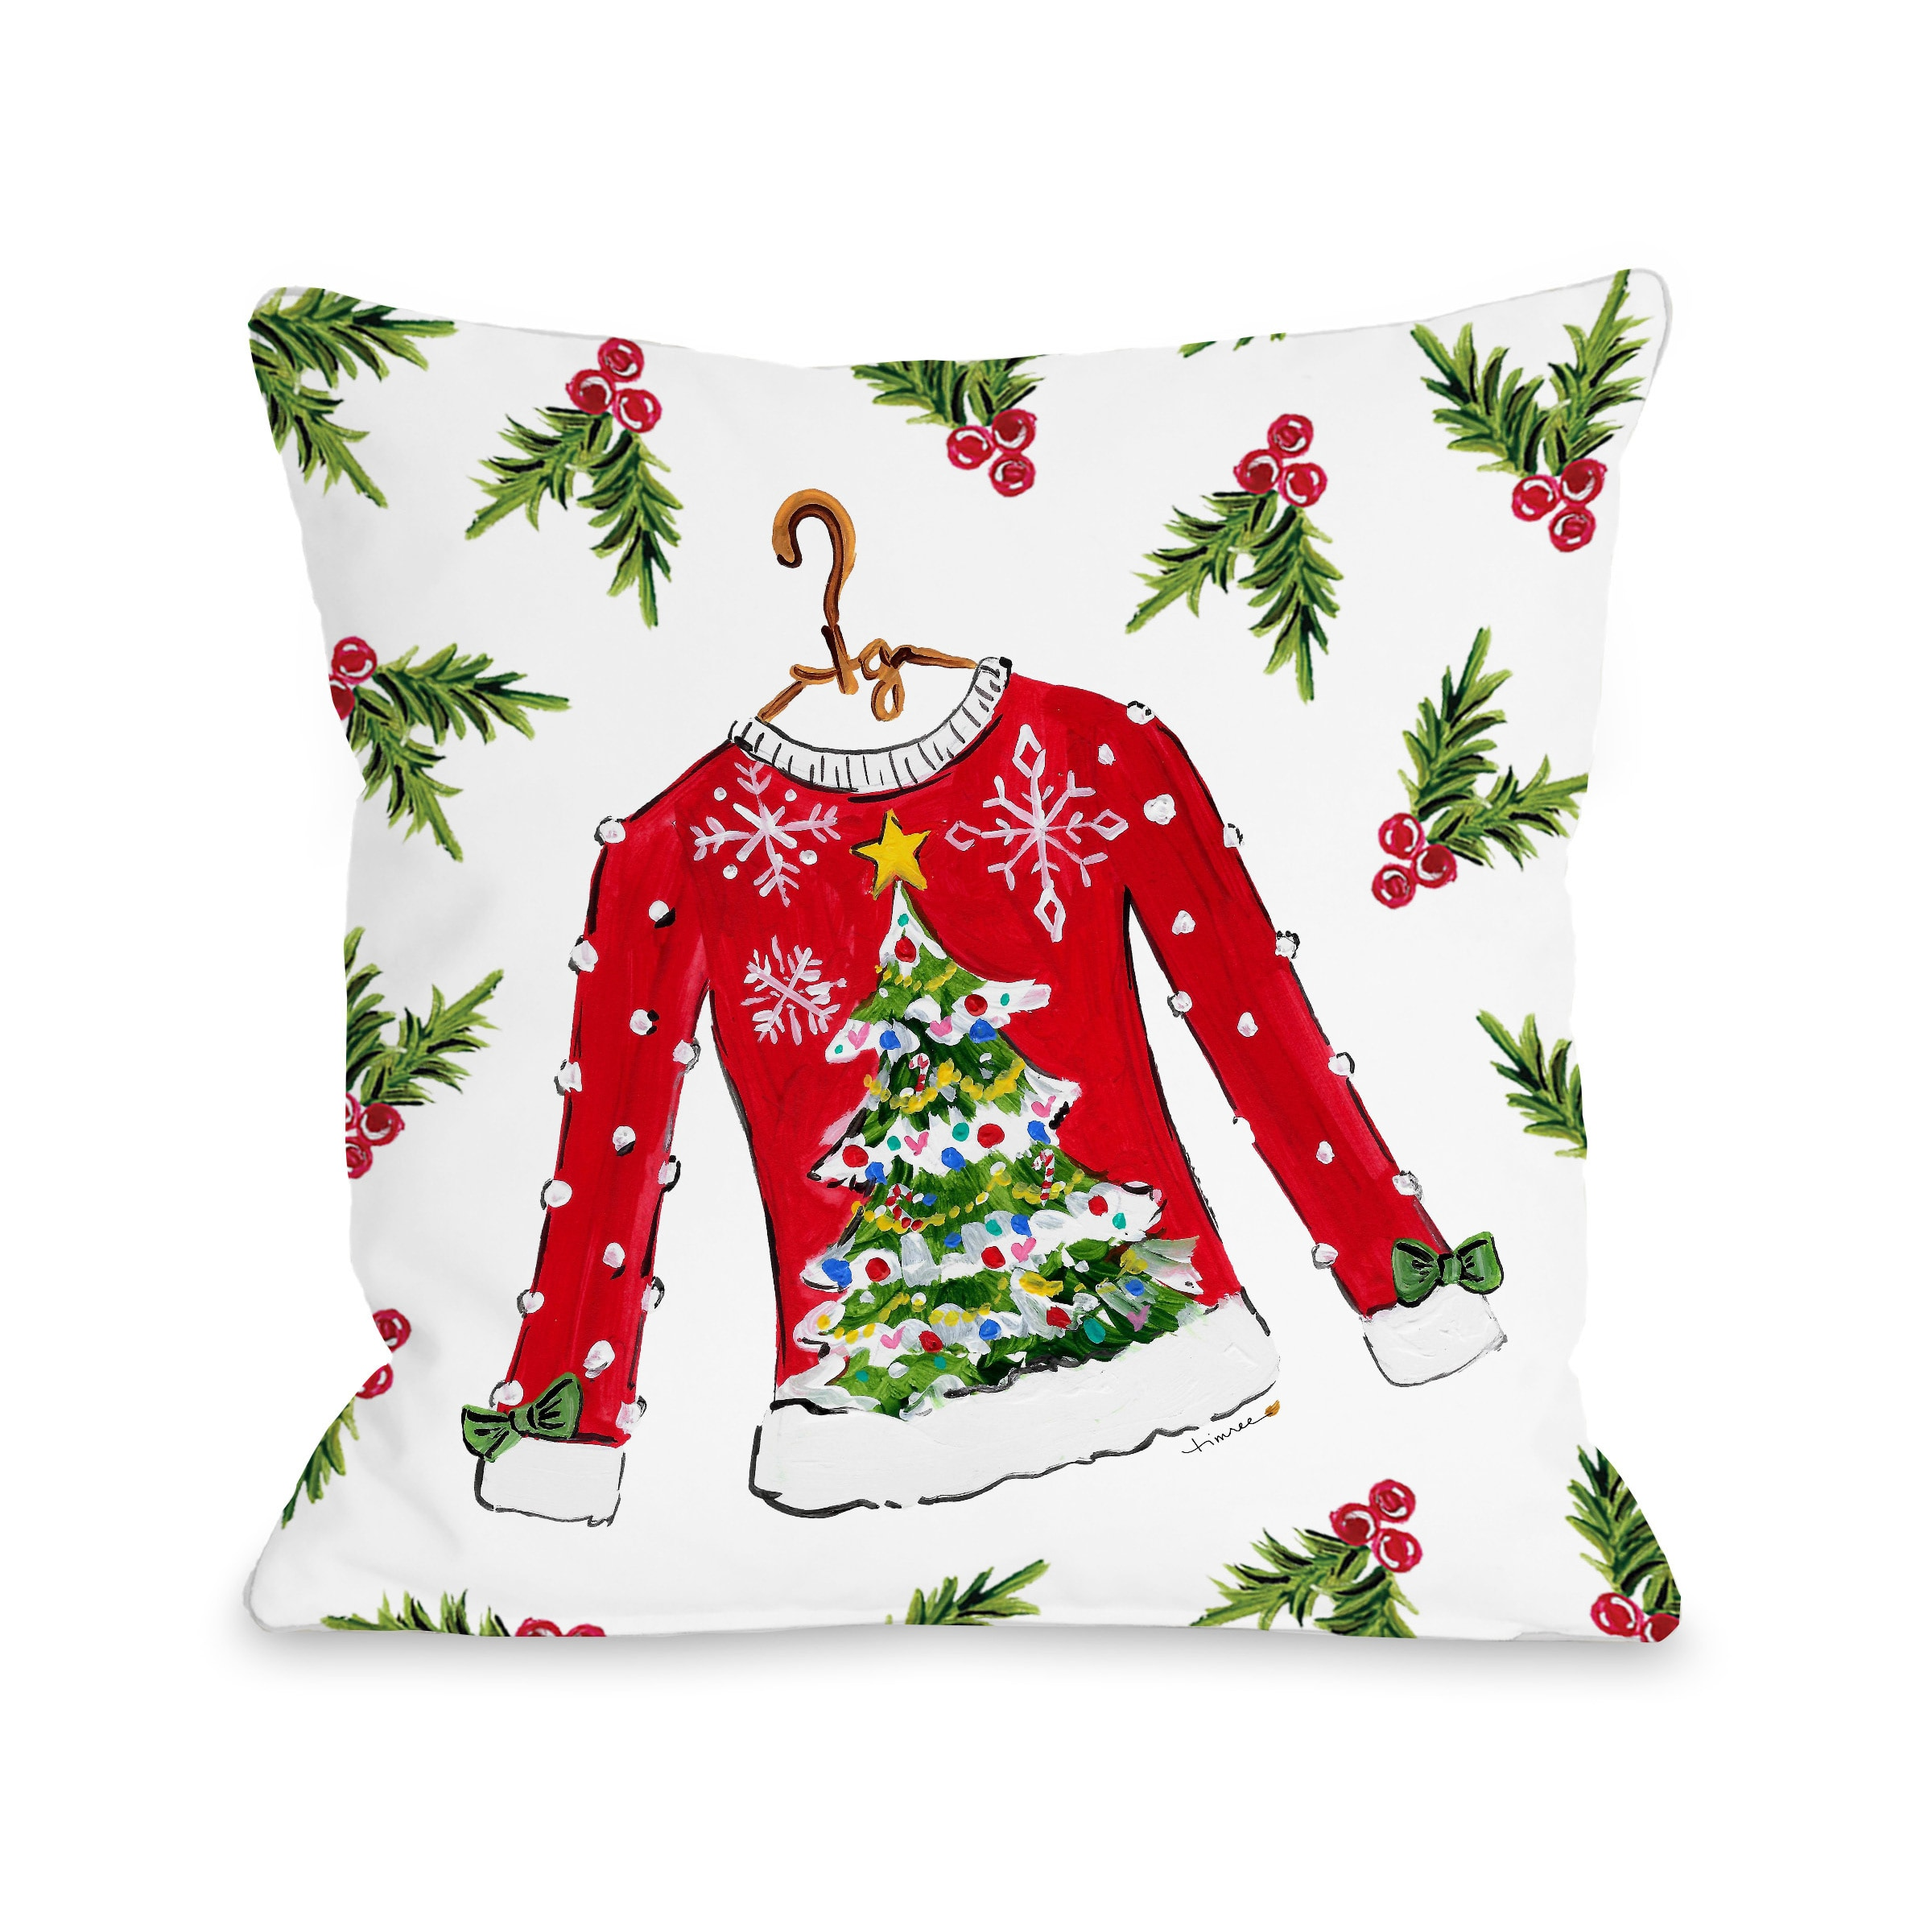 Tree Sweater - Red 16x16 Pillow by Timree Gold